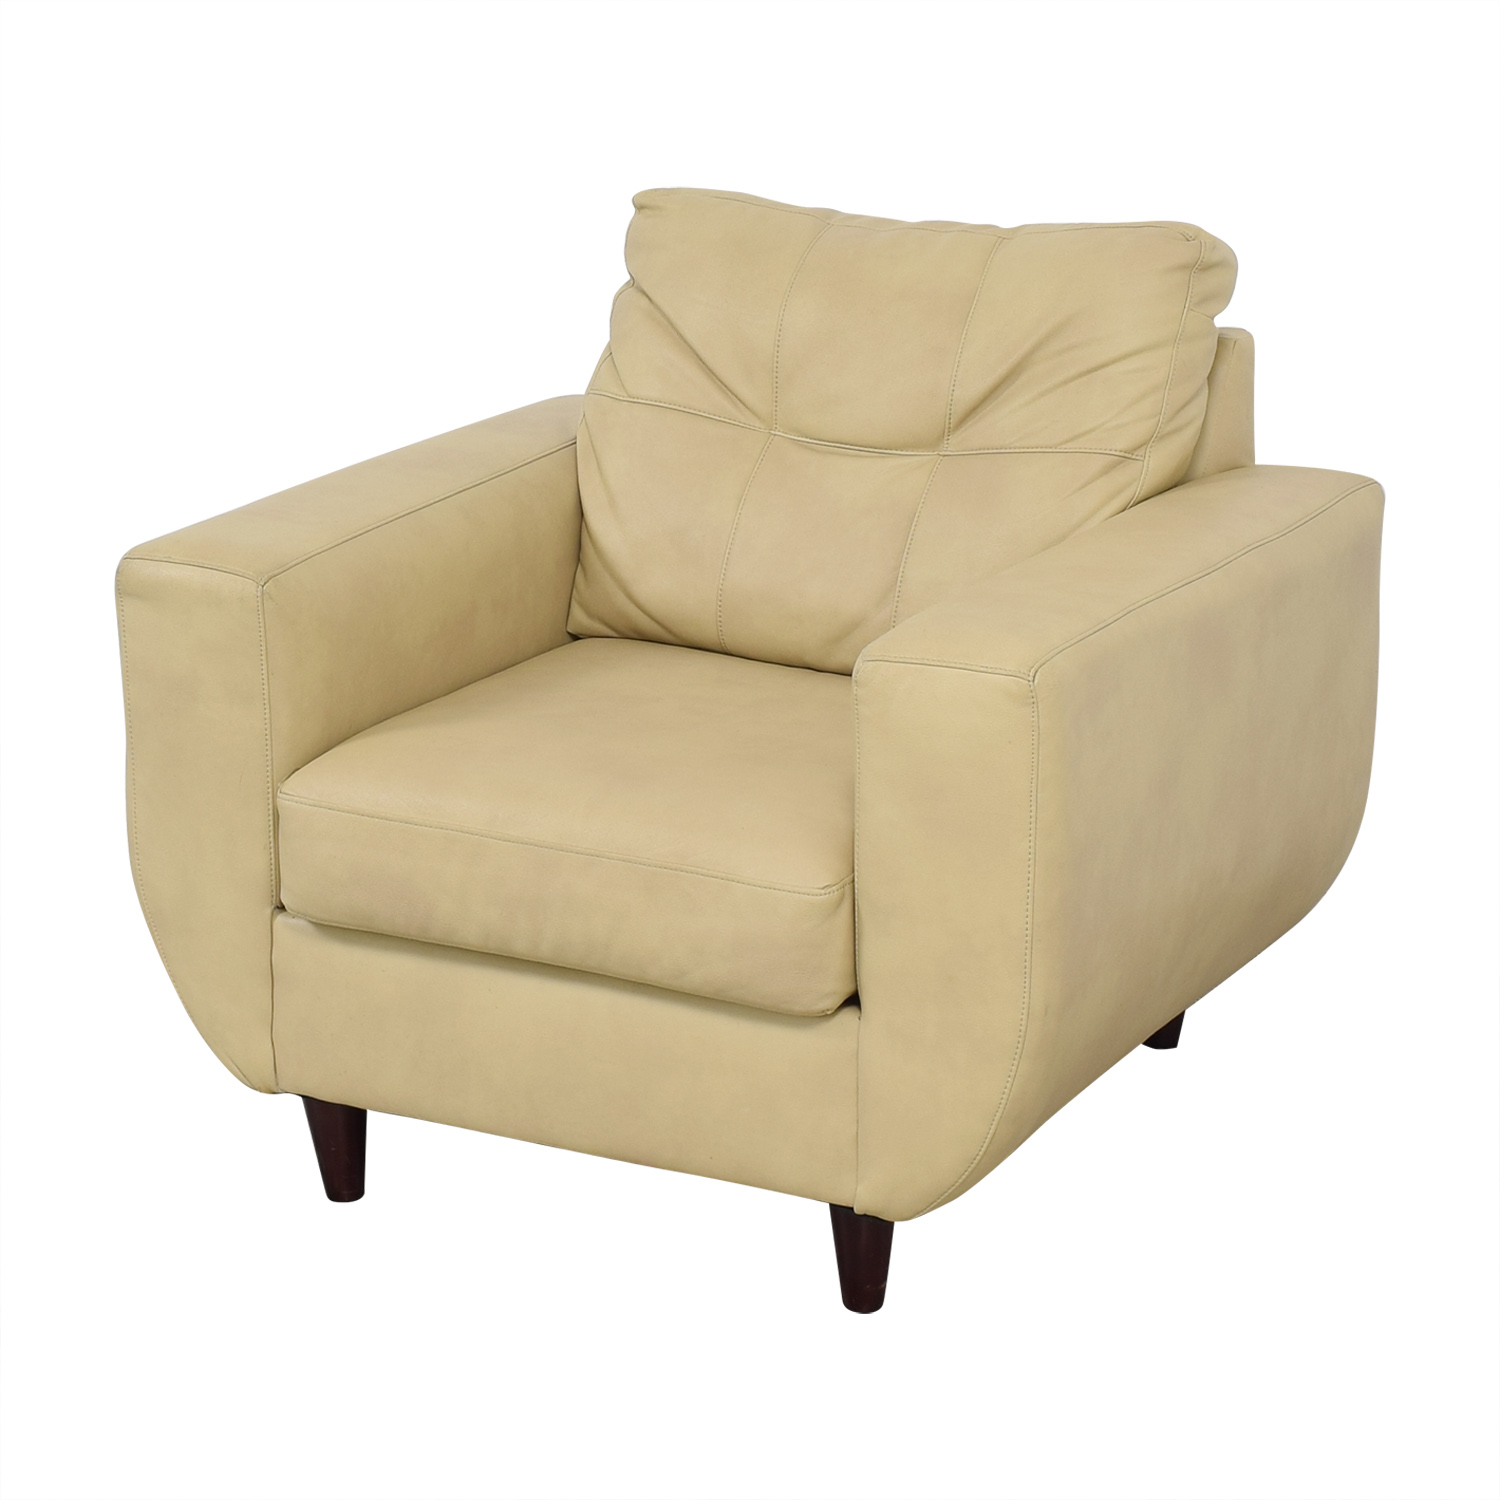 HomeGoods HomeGoods Cushioned Armchair pa